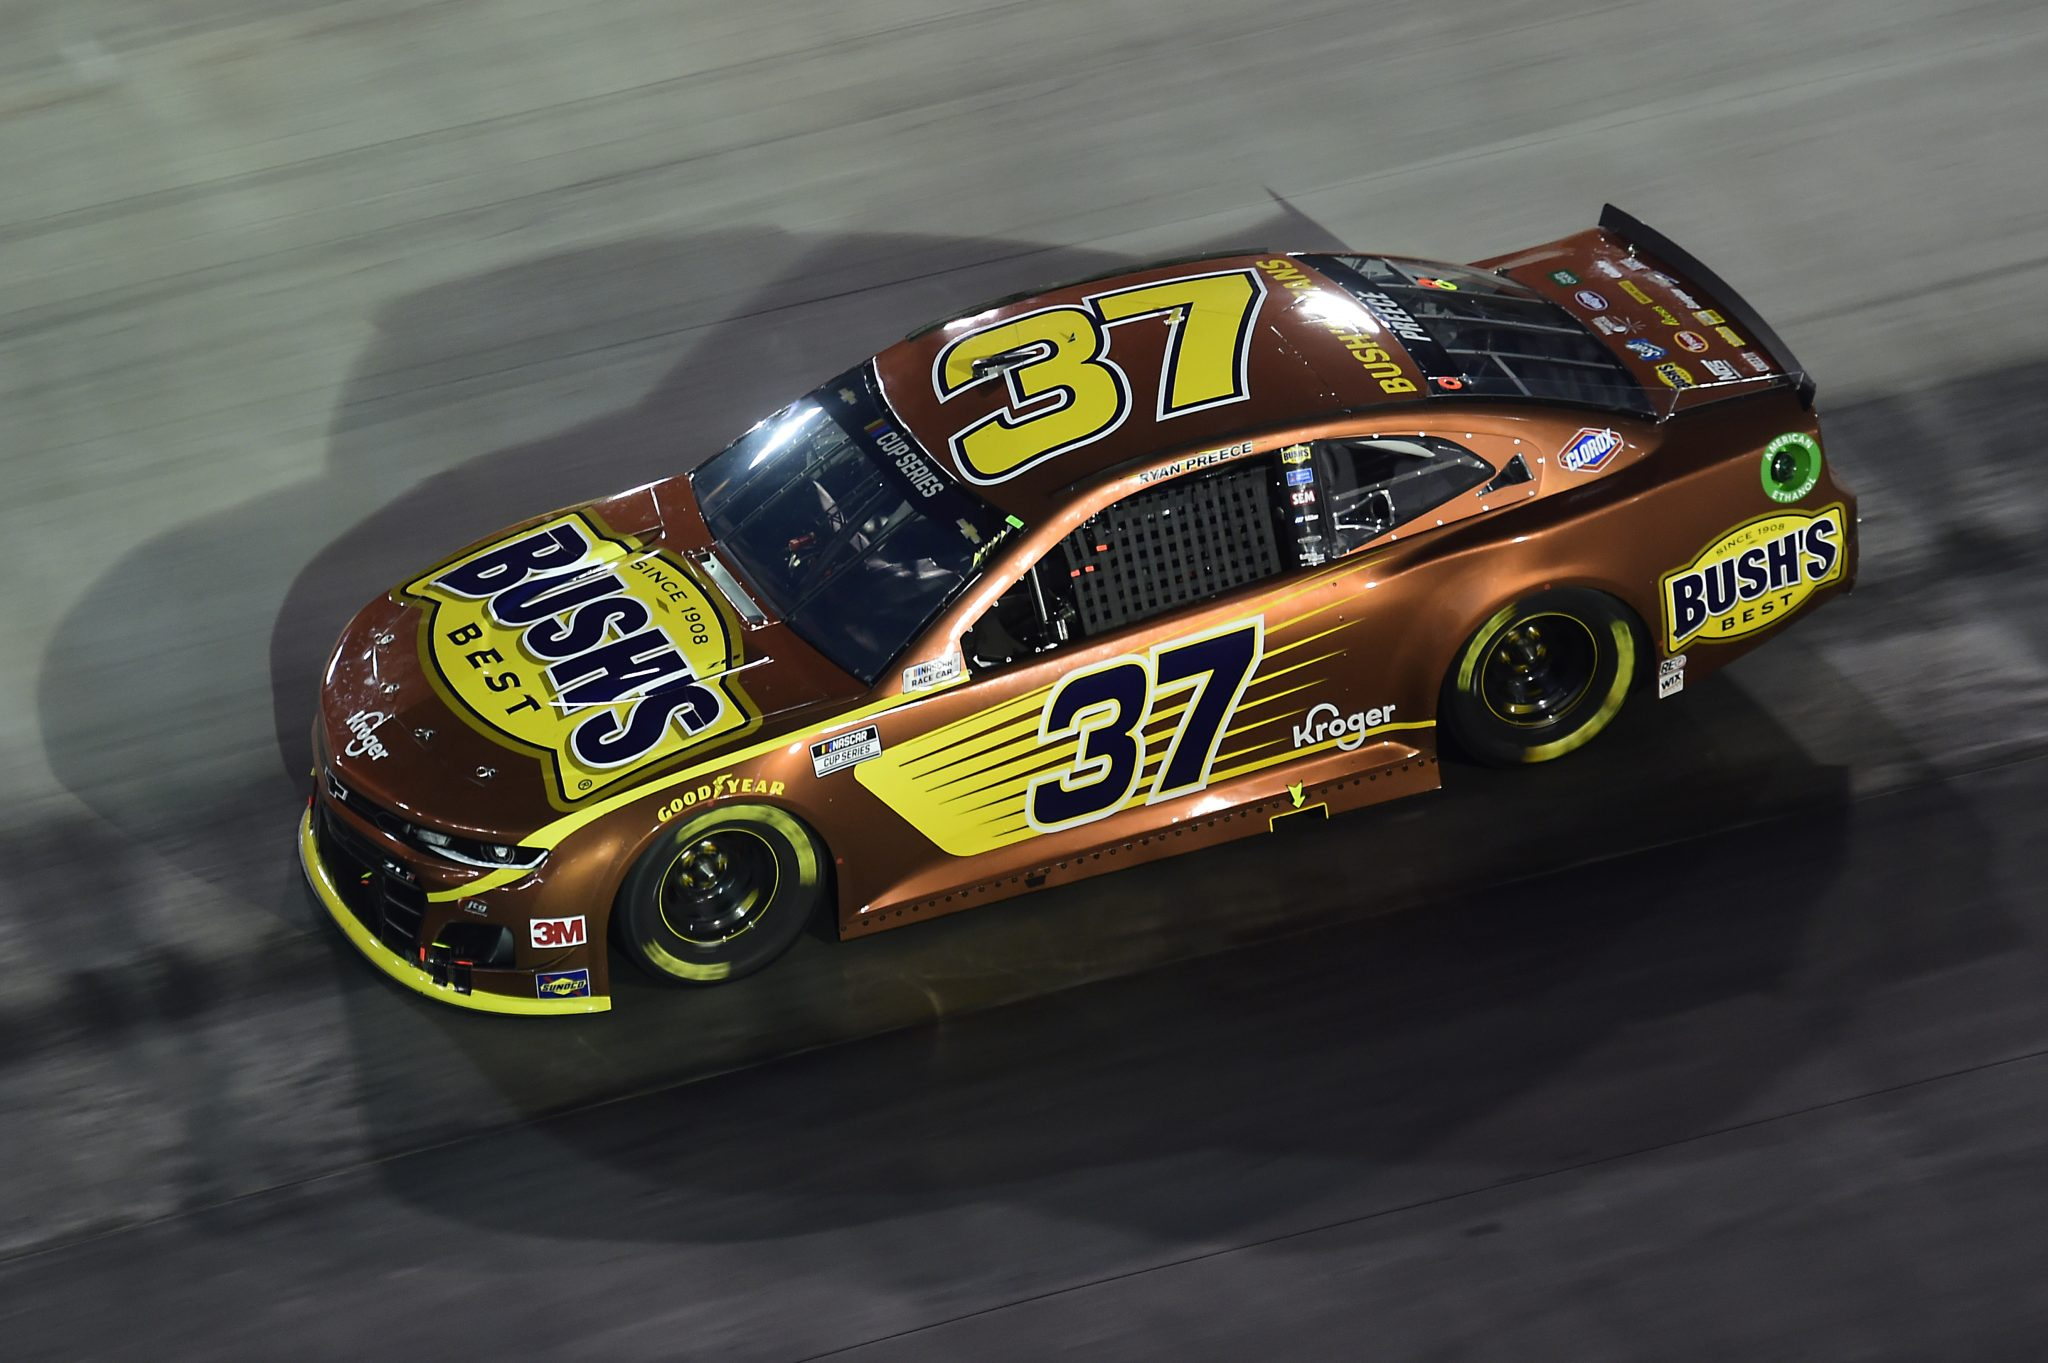 BRISTOL, TENNESSEE - SEPTEMBER 19: Ryan Preece, driver of the #37 Bush's Beans Chevrolet, drives during the NASCAR Cup Series Bass Pro Shops Night Race at Bristol Motor Speedway on September 19, 2020 in Bristol, Tennessee. (Photo by Jared C. Tilton/Getty Images) | Getty Images